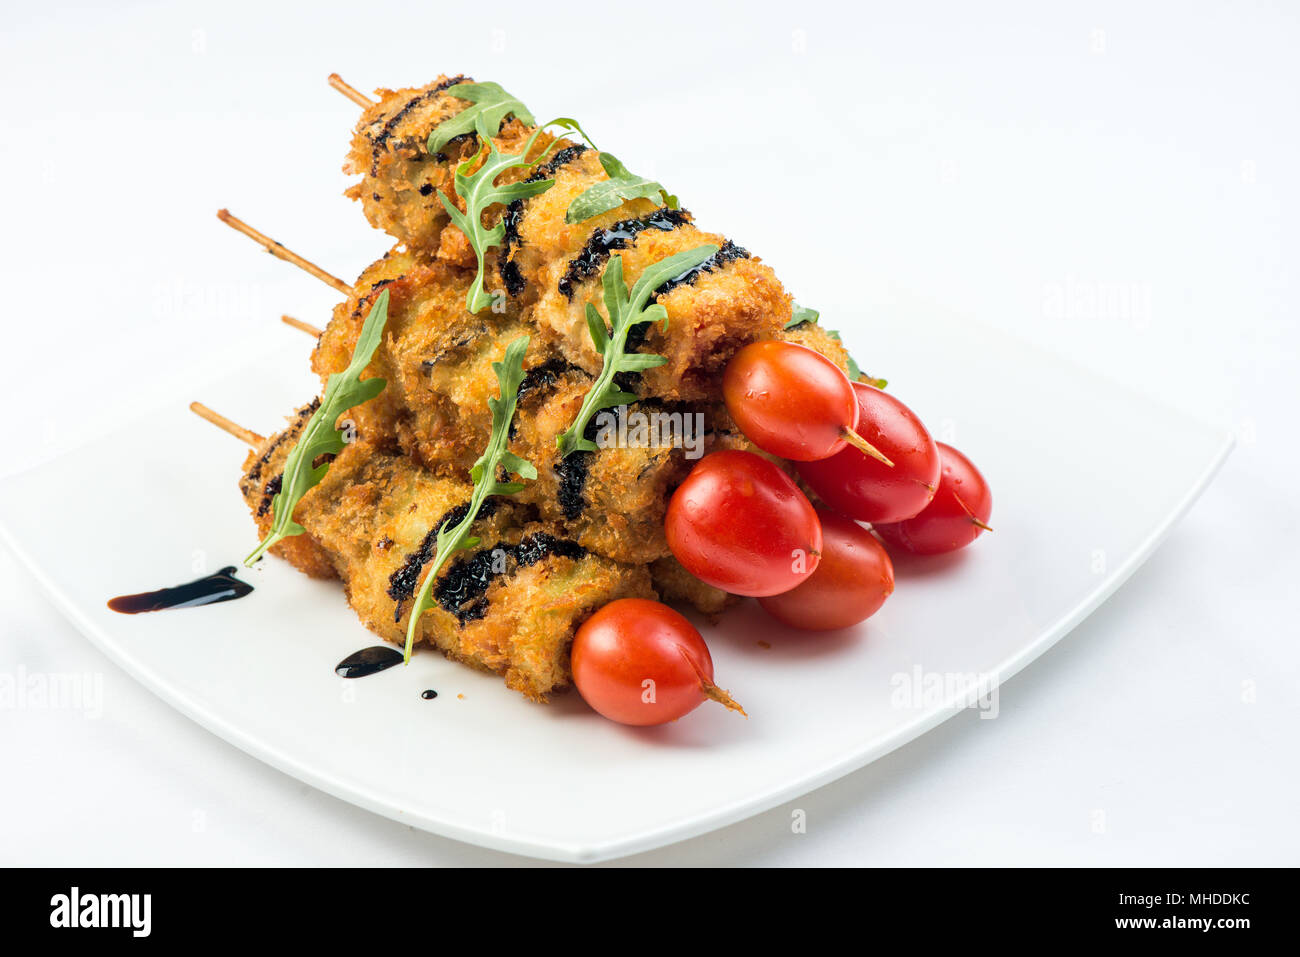 vegetables on skewer fried in batter decorated with tomatoes zucchini, eggplant, zucchini. white plate on white background - Stock Image